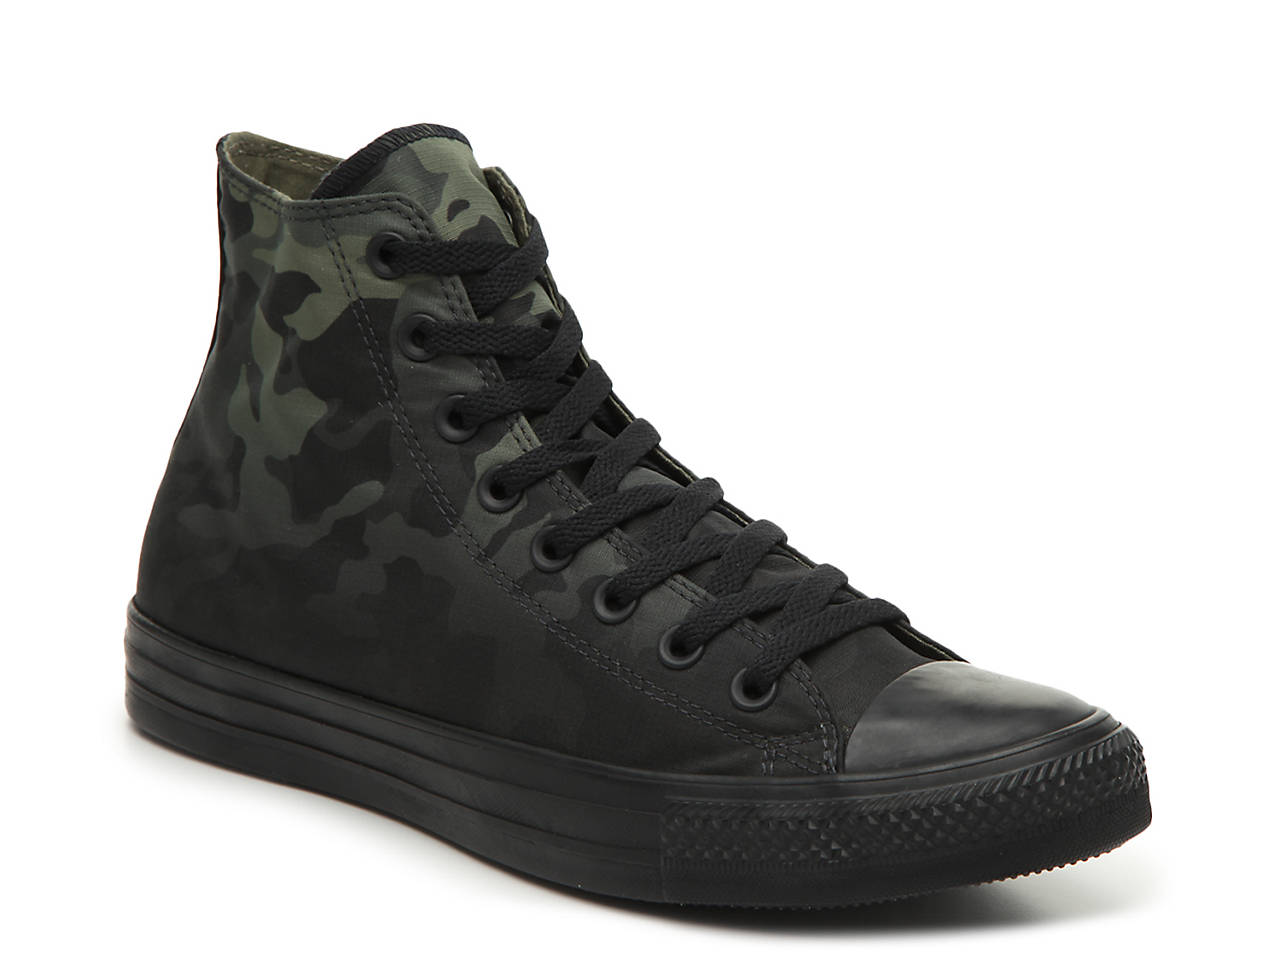 76dafb64d904 Converse Chuck Taylor All Star Hi Camo High-Top Sneaker - Men s ...